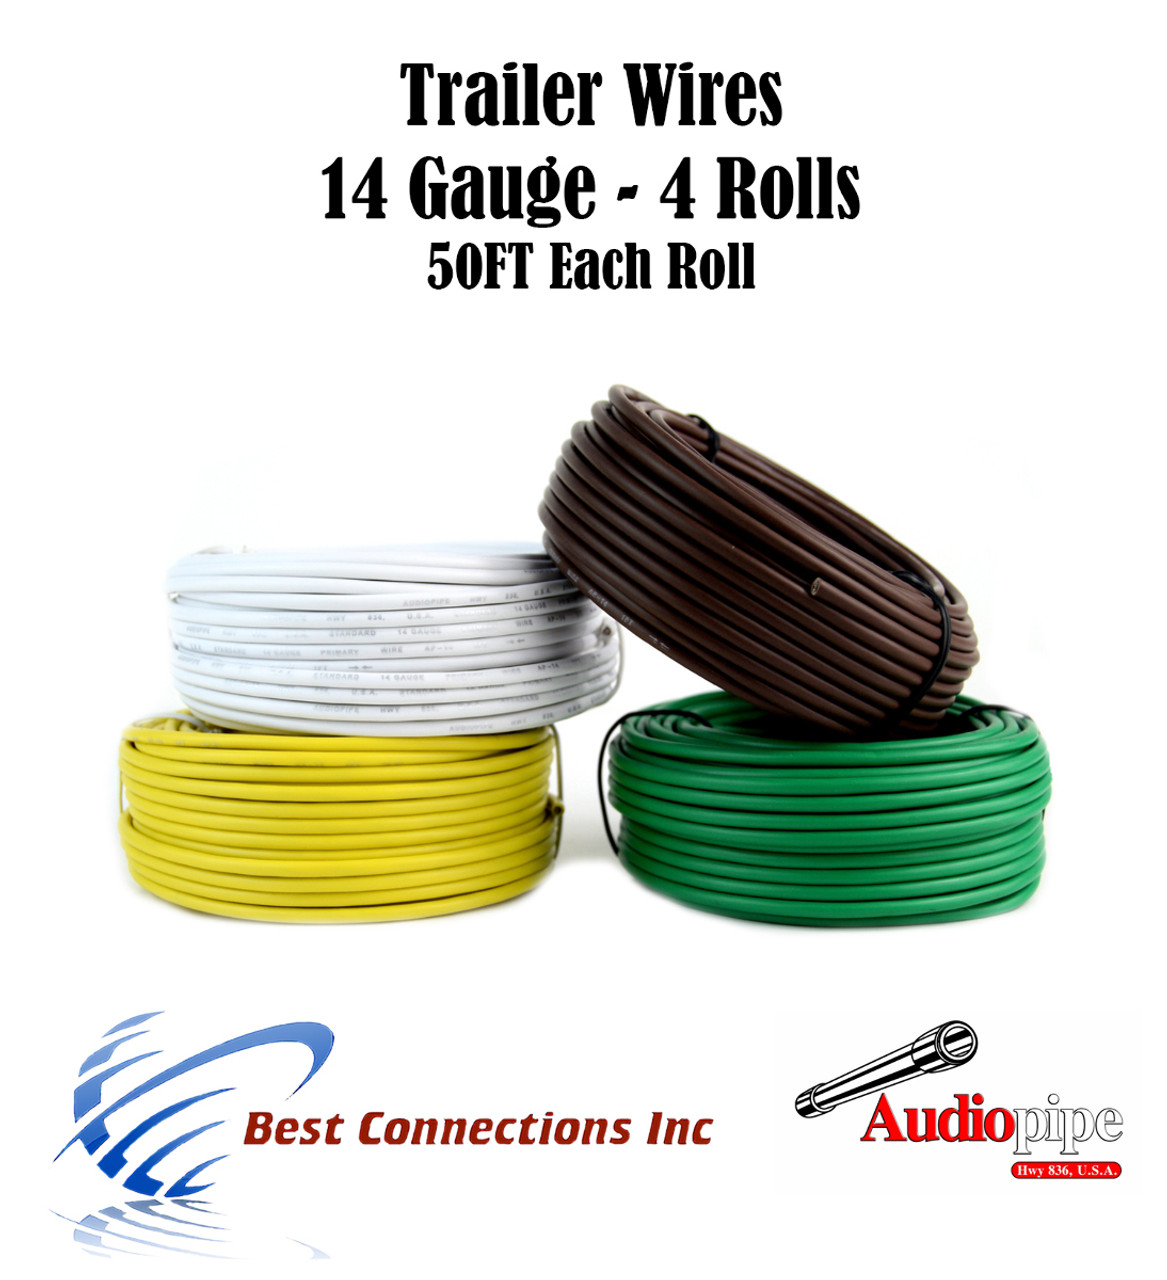 trailer light cable wiring for harness 50 feet 14 gauge 4 wire 4 colors [ 1094 x 1200 Pixel ]